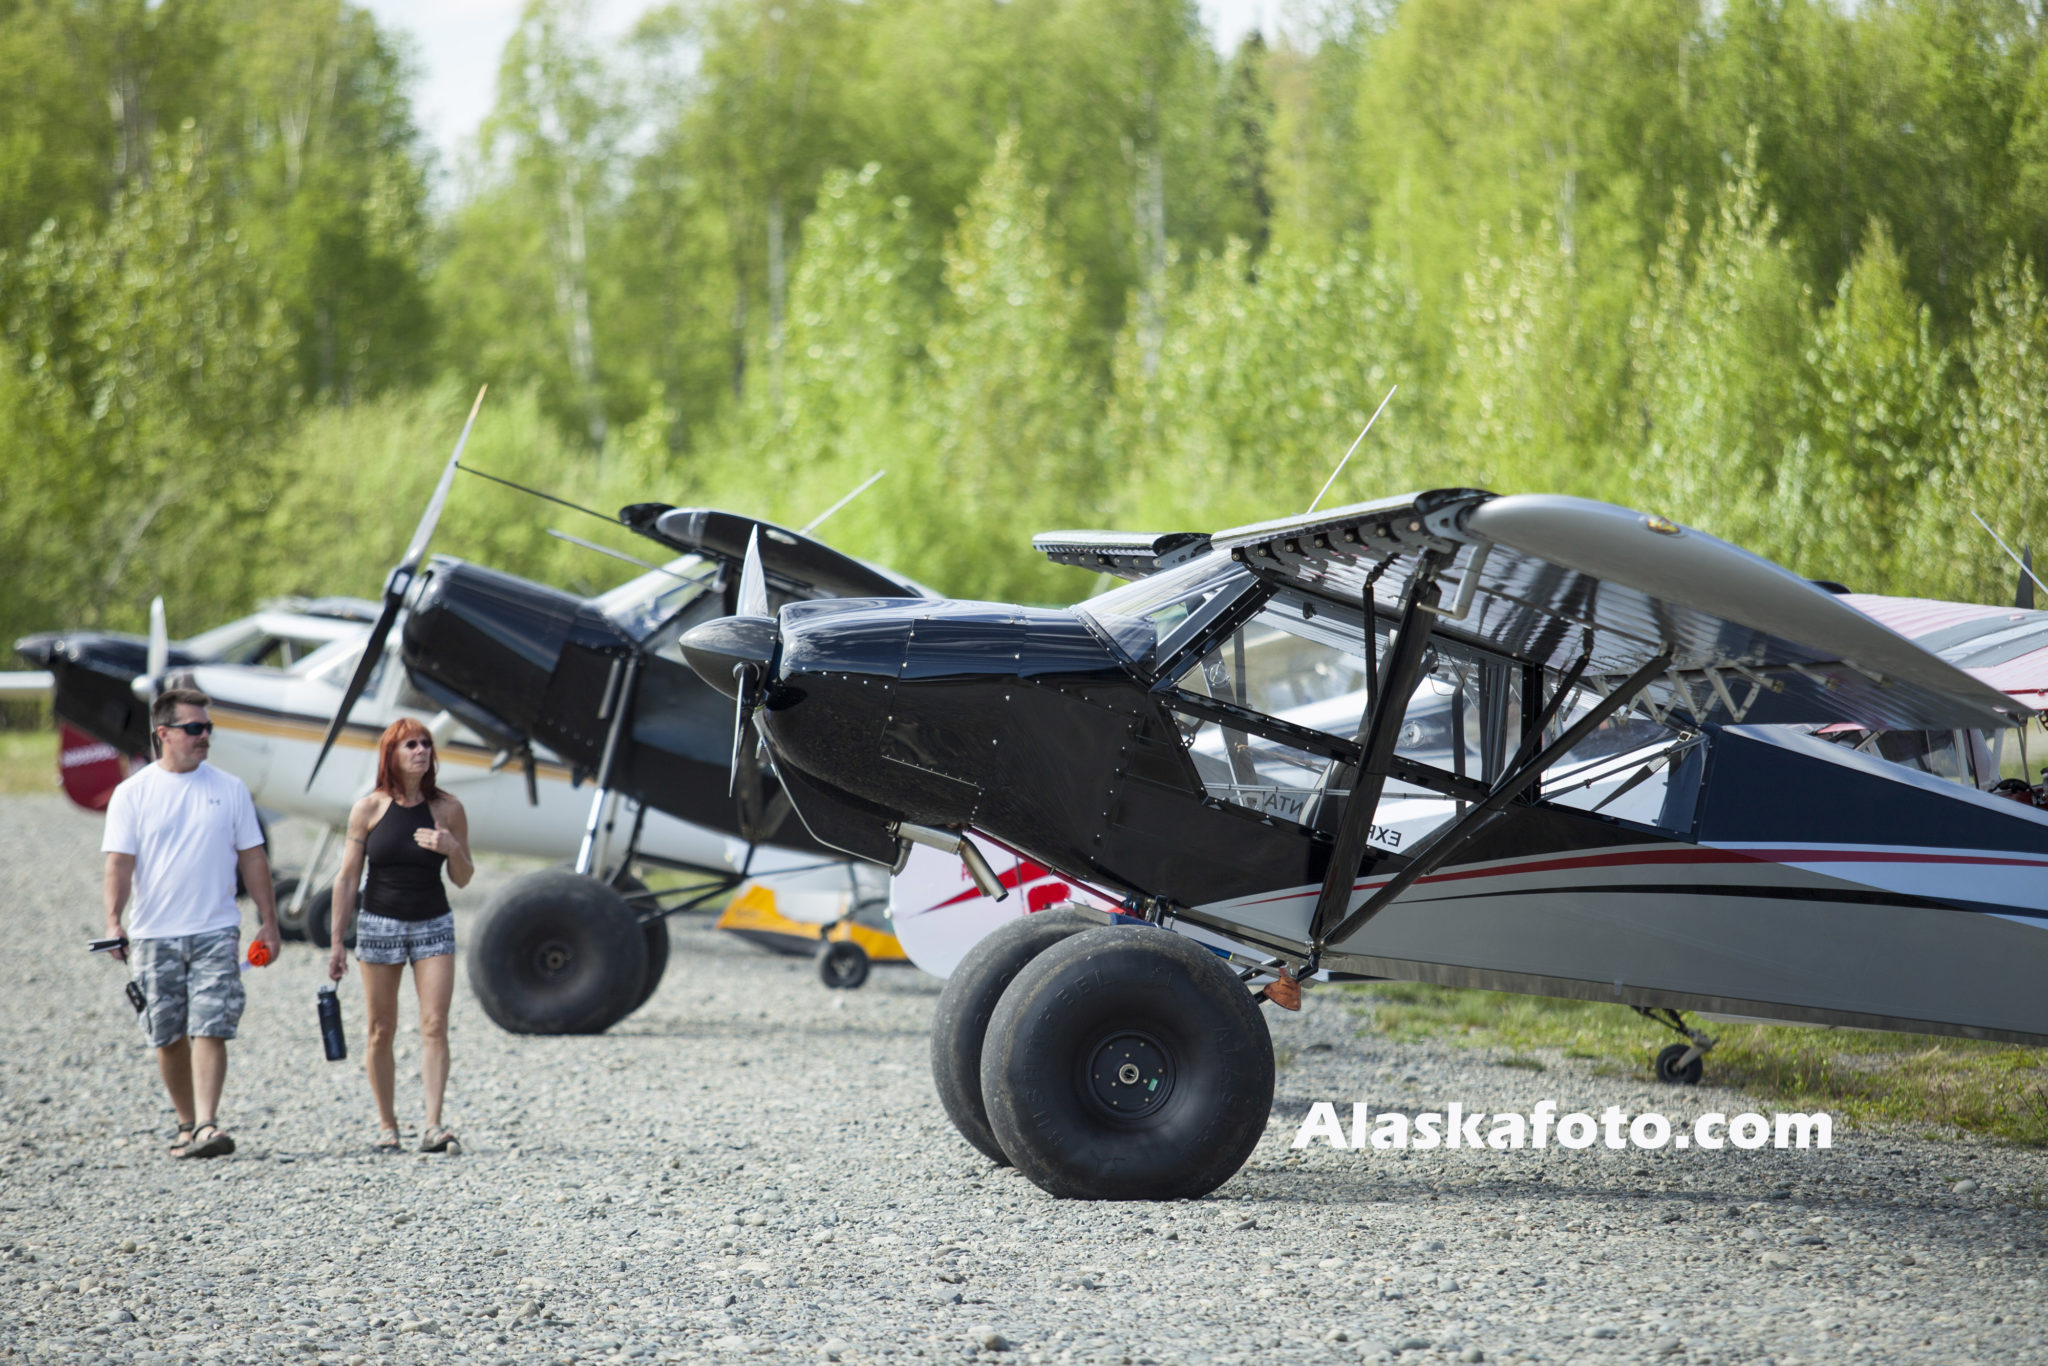 Alaska aircraft Photography| Alaskafoto- Best Aircraft portraits Alaska - Rob Stapleton